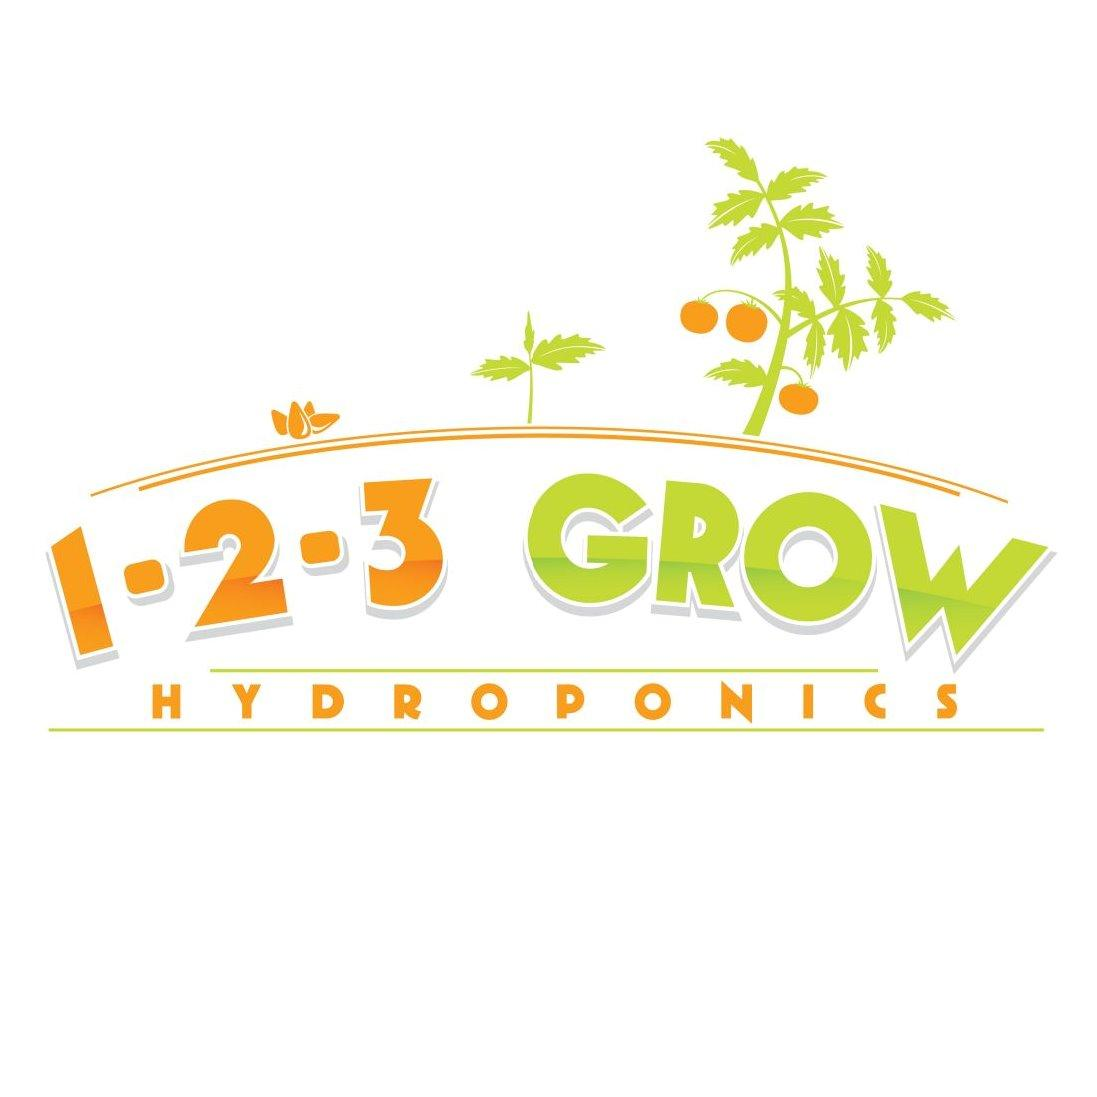 1 2 3 Grow Hydroponics - All the Supplies you Need to Keep your Garden Green